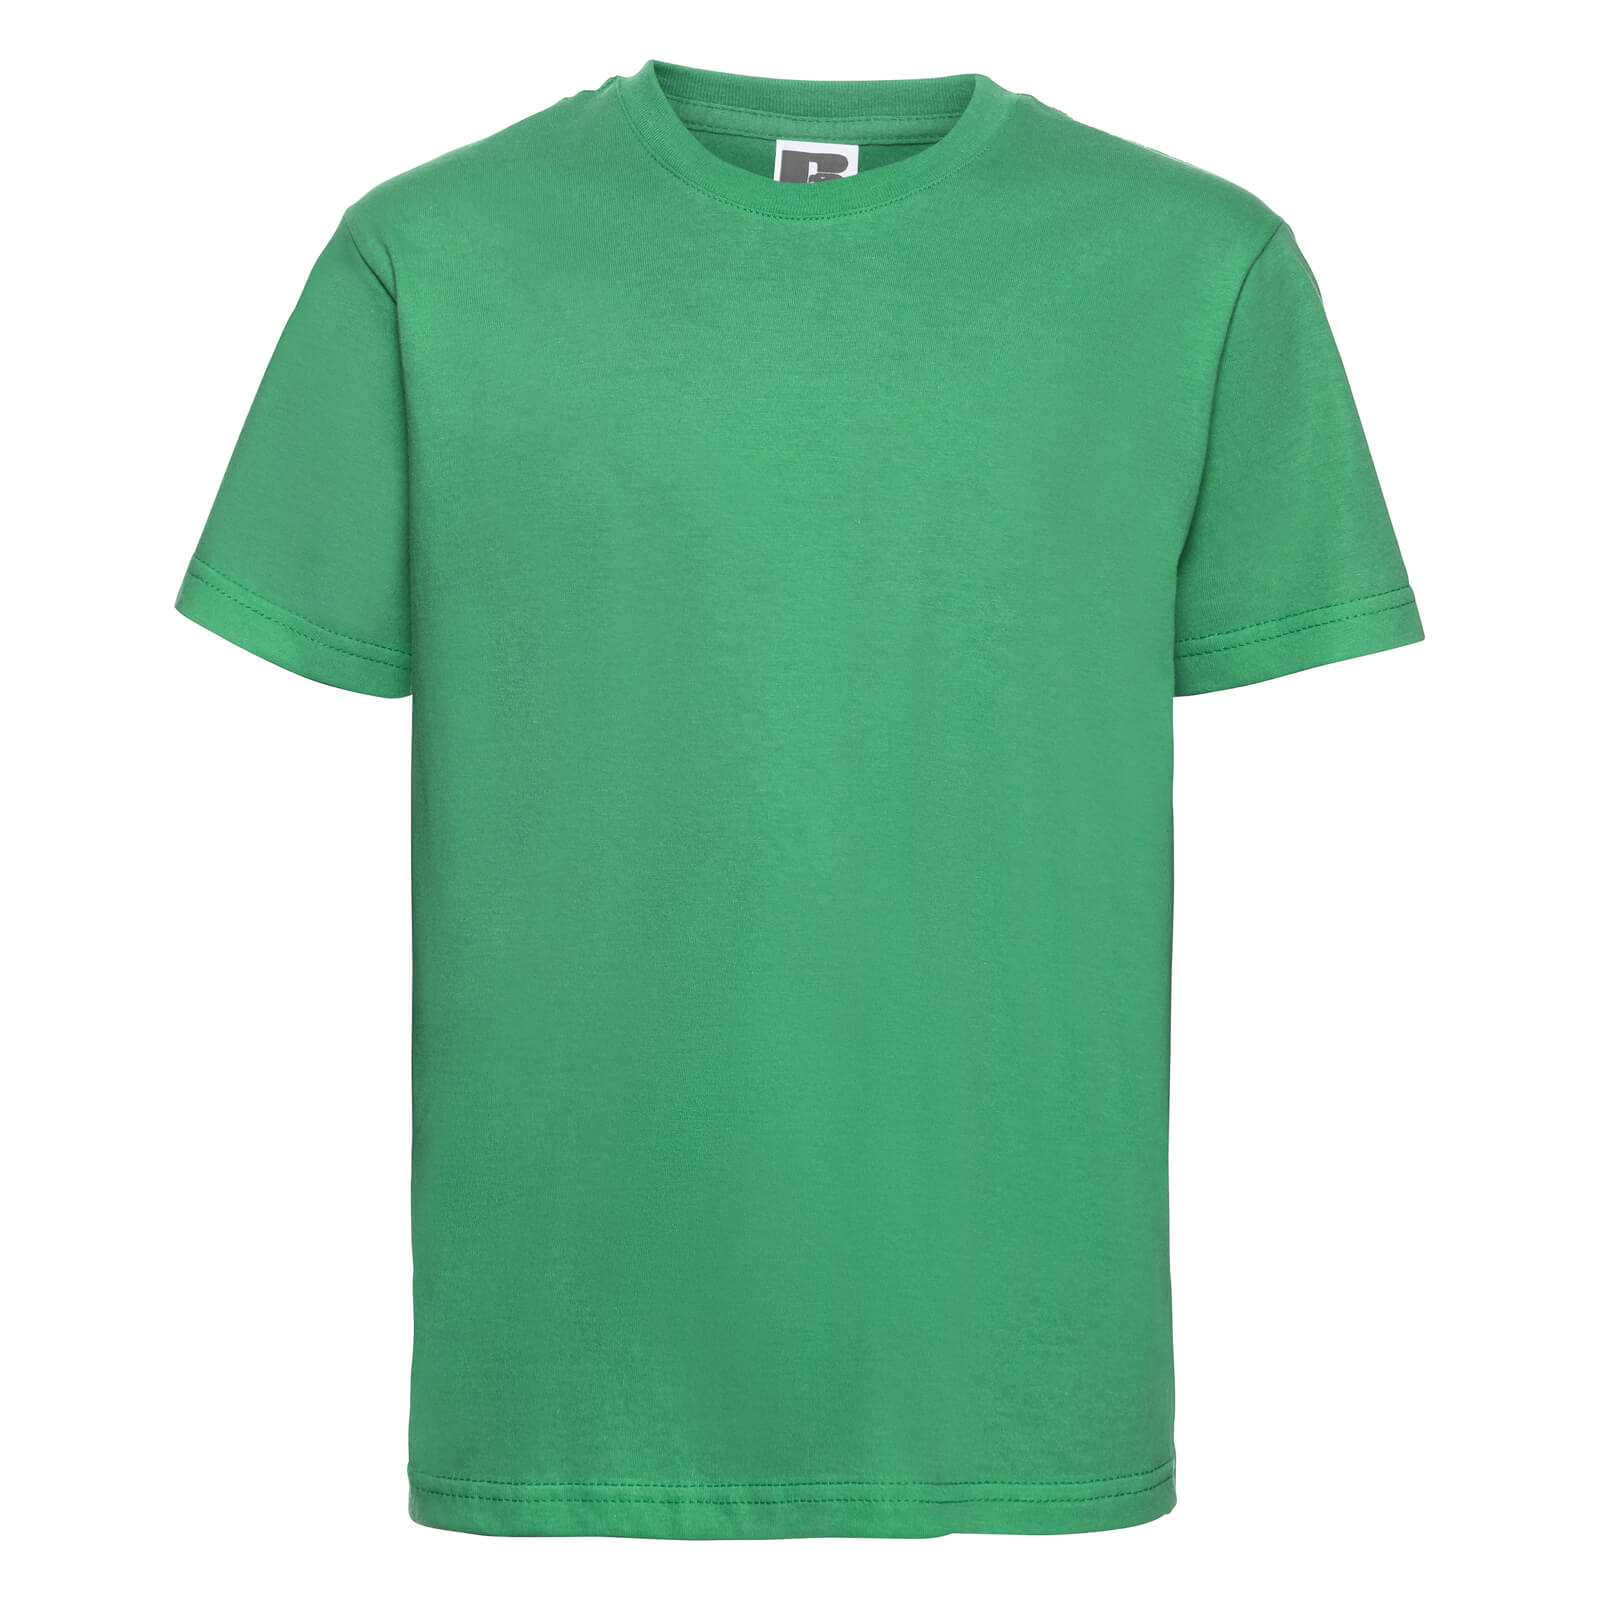 Russell-T-shirt-a-manches-courtes-Garcon-PC2694 miniature 12